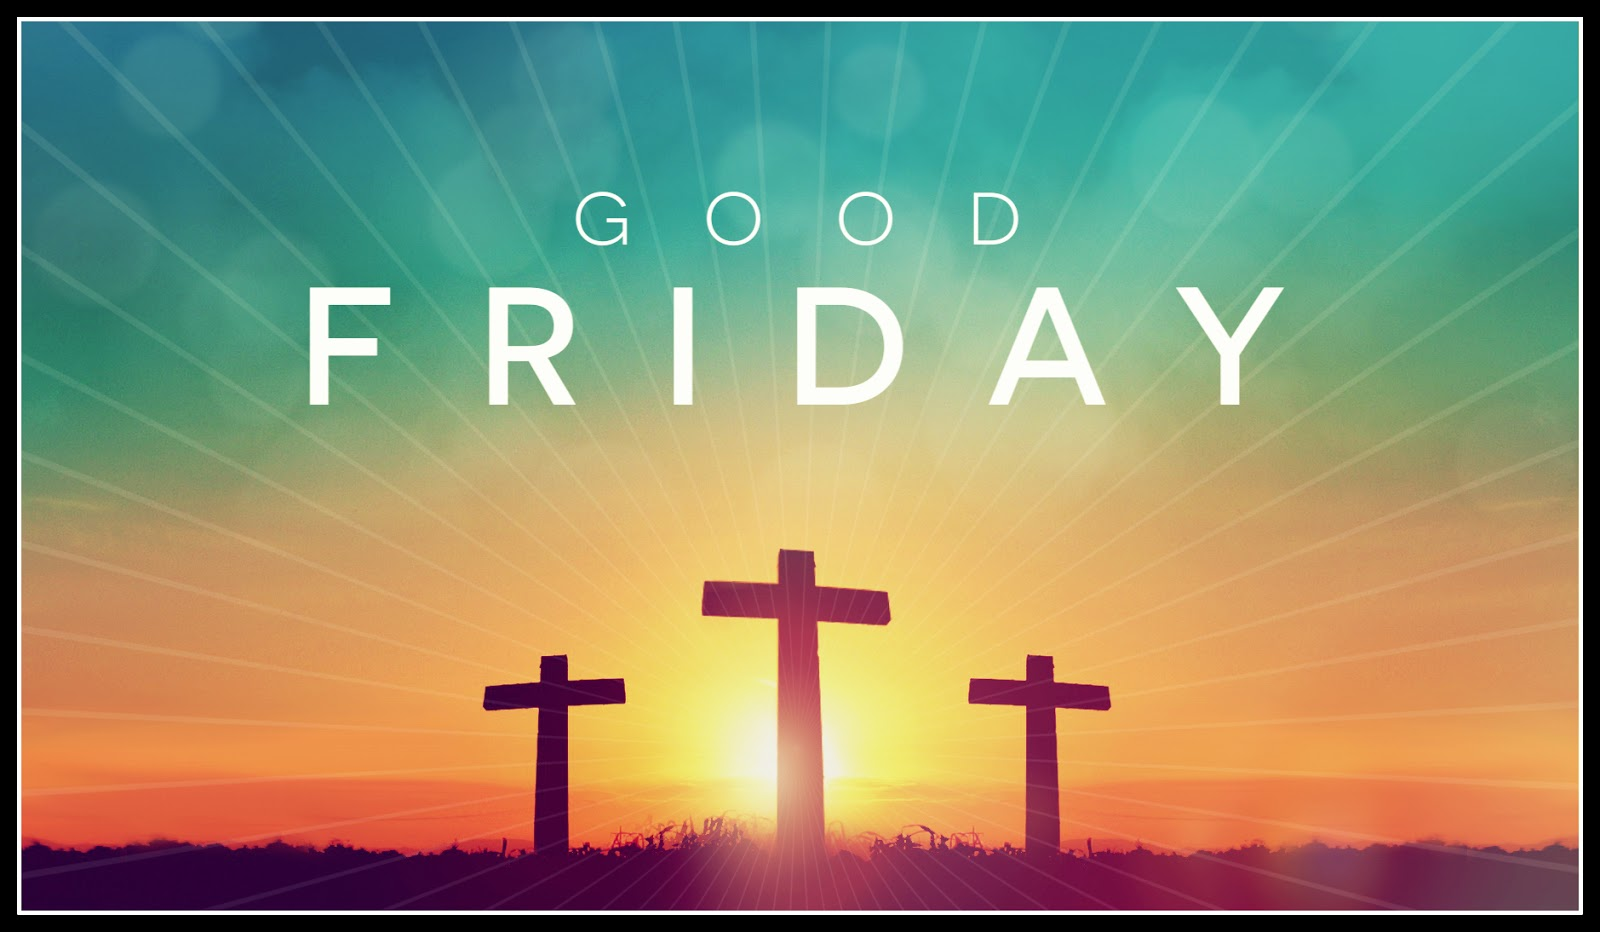 Good Friday Picture Quotes: Holy Good Friday 2018 Wishes Messages Quotes Sayings In